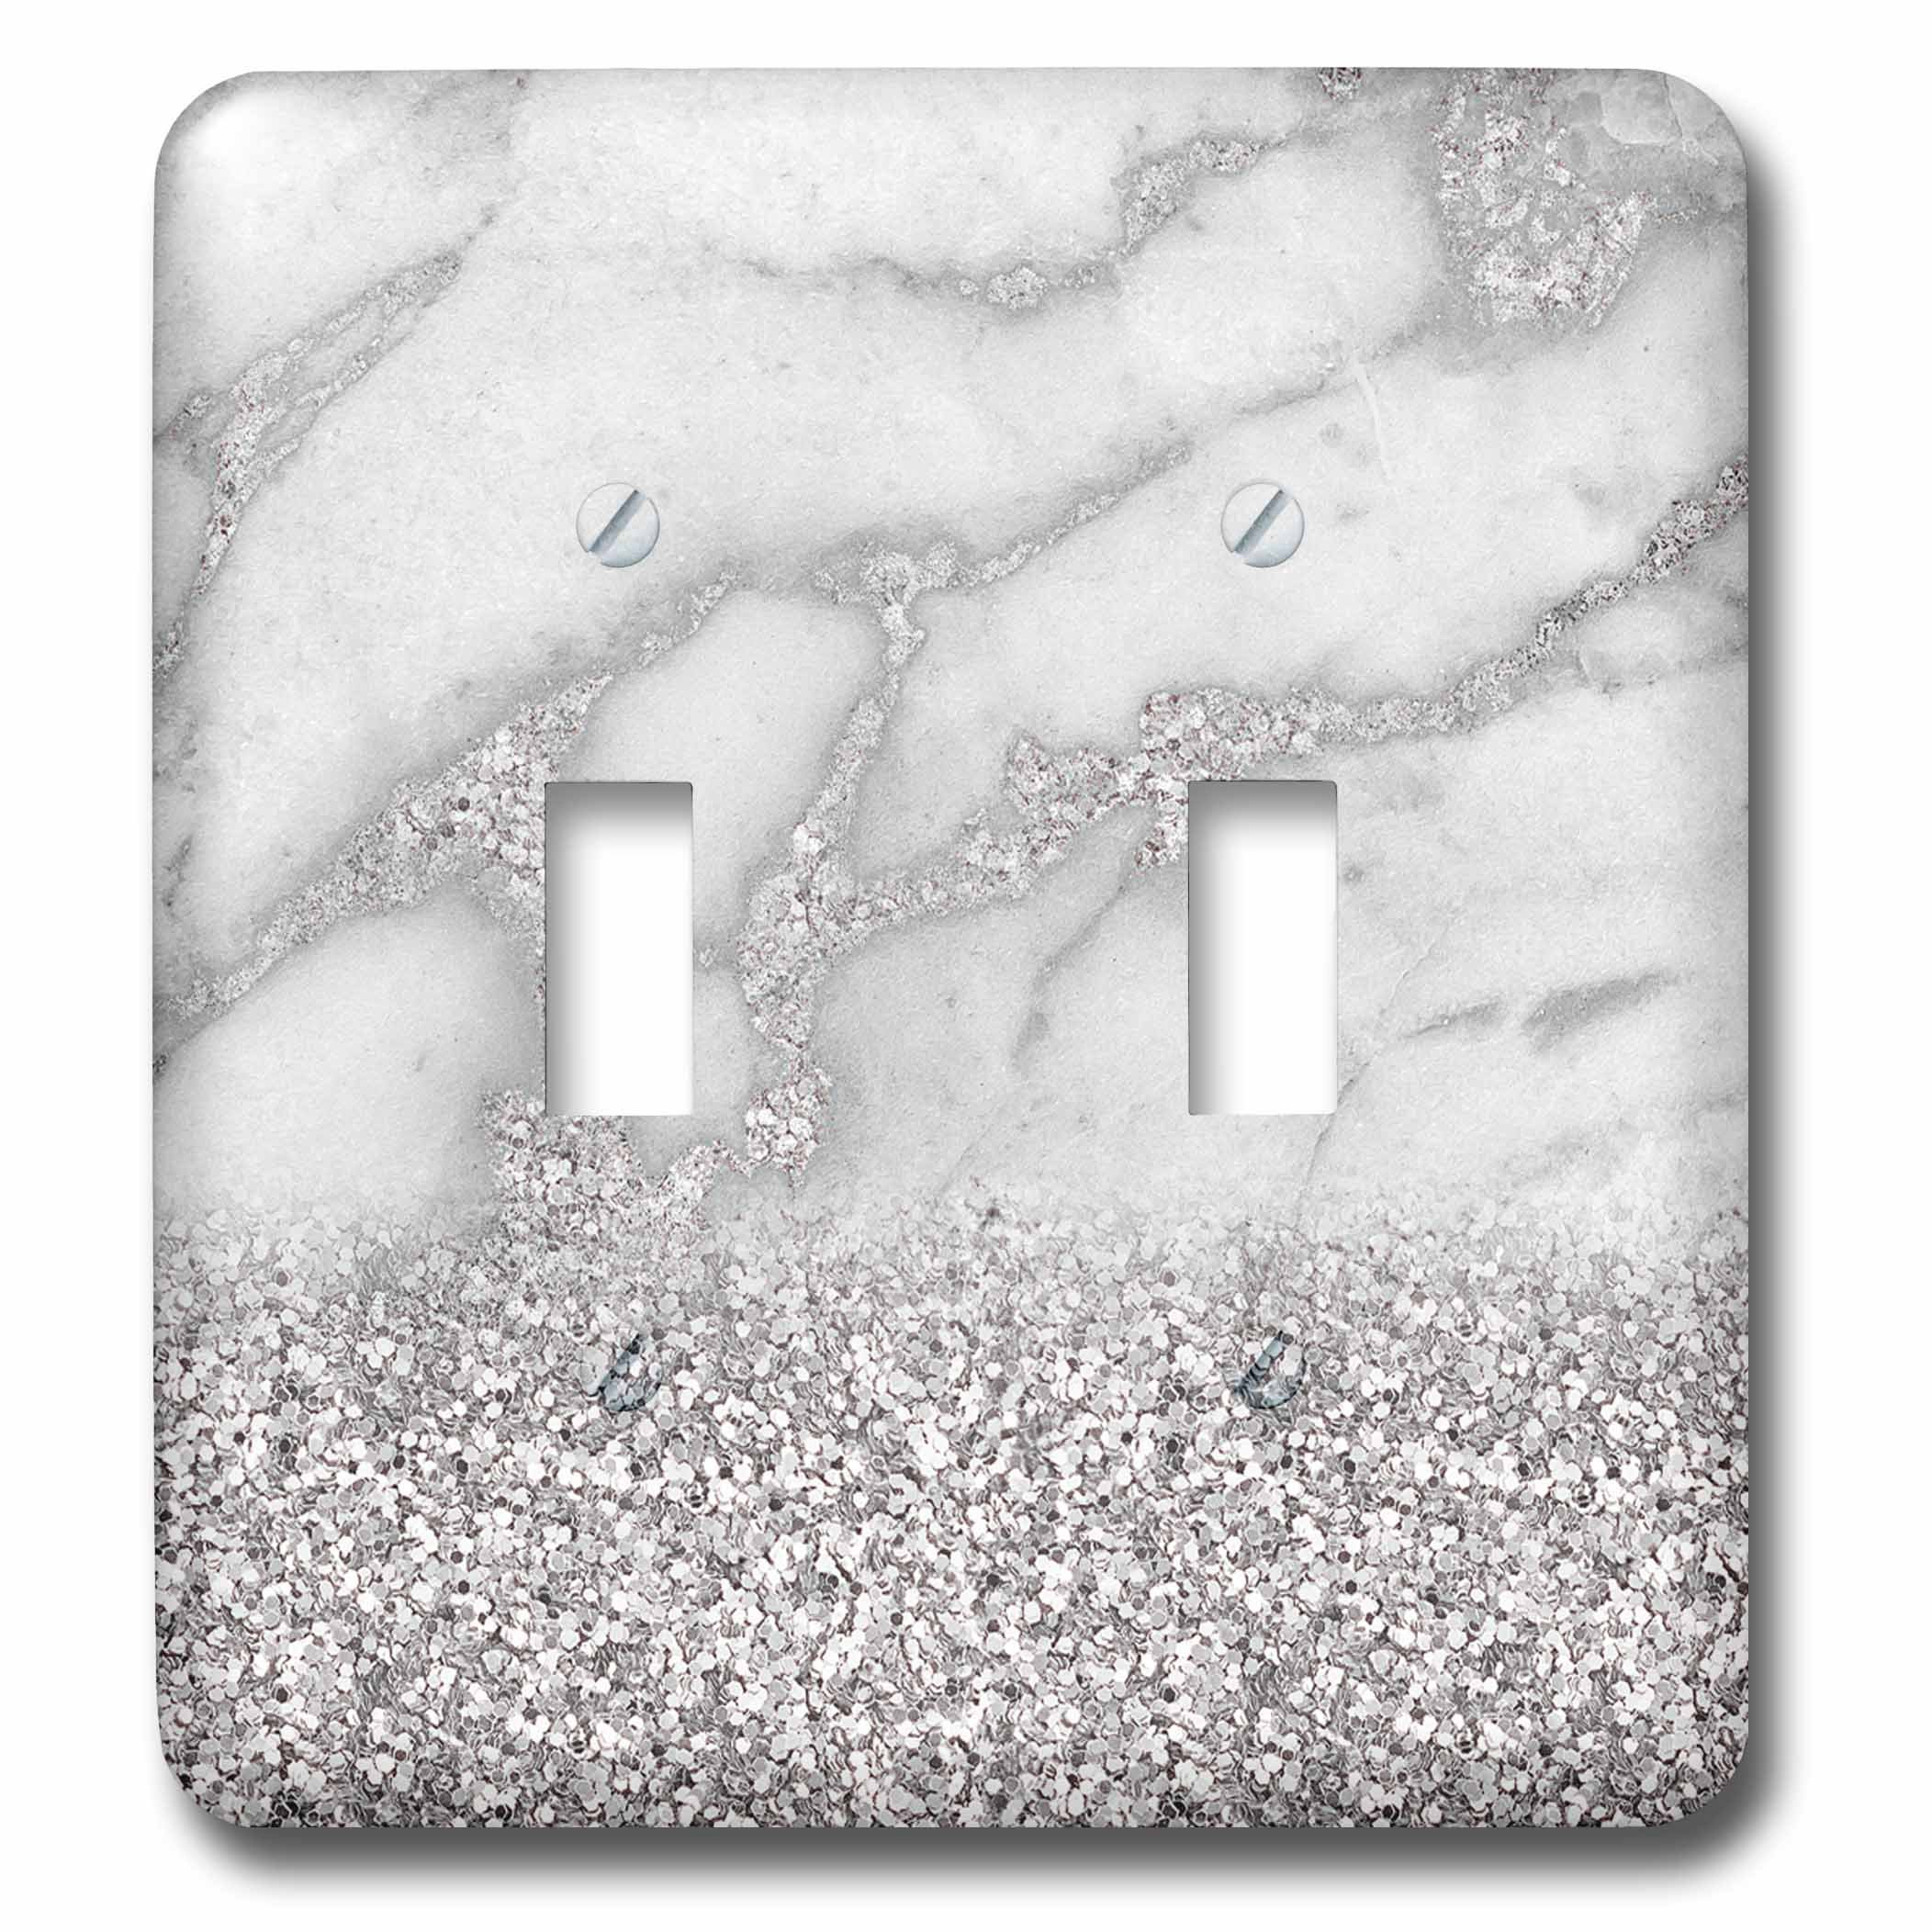 3dRose (lsp_268850_2) Double Toggle Switch (2) Luxury Grey Silver Gem Stone Marble Glitter Metallic Faux Print